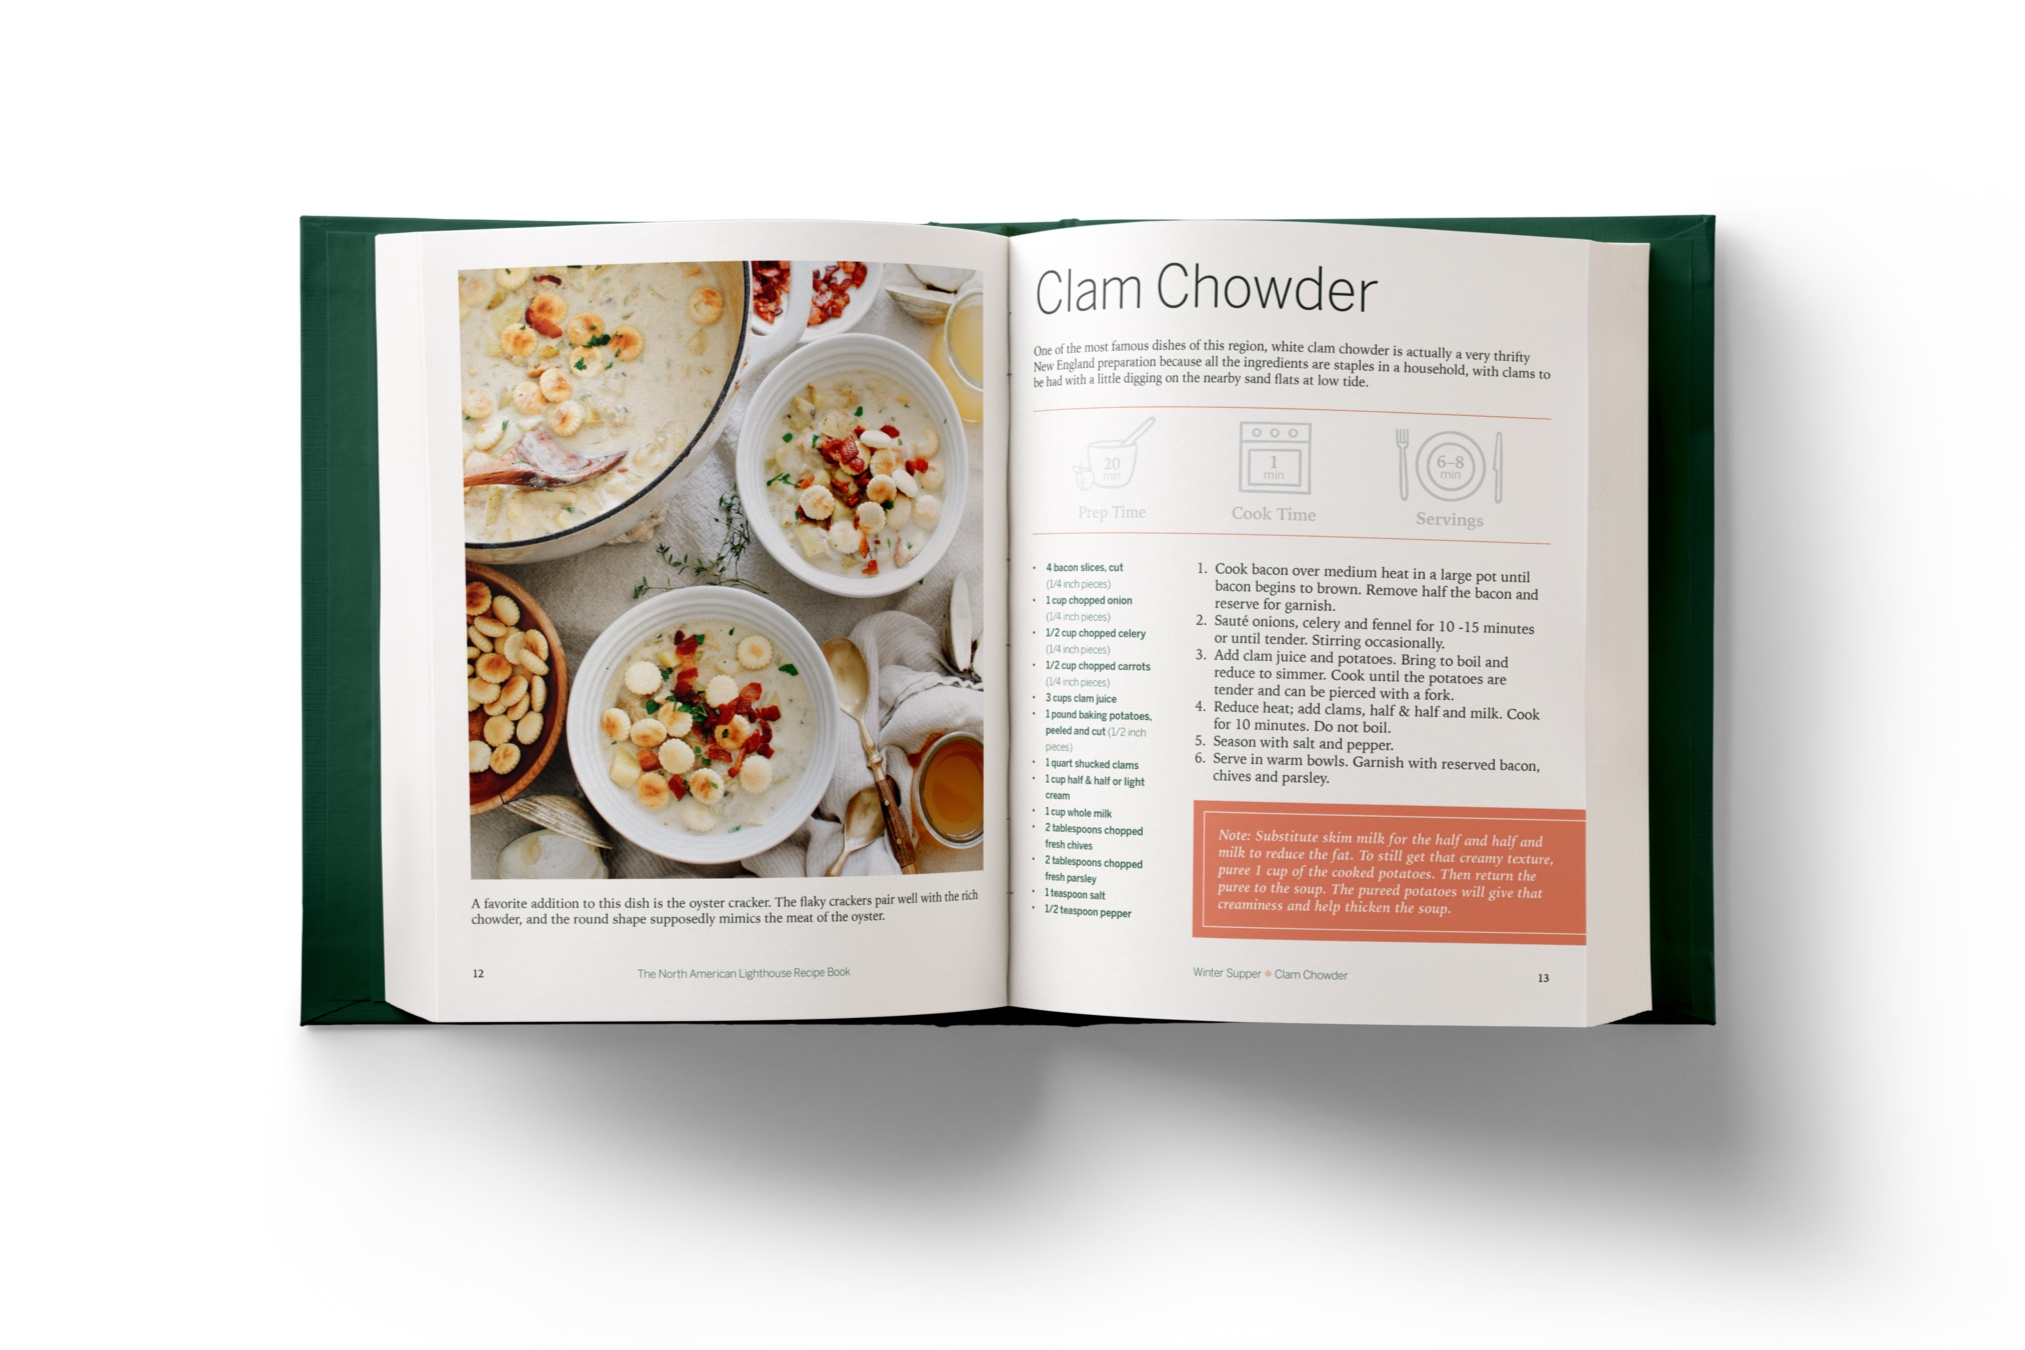 The North American Lighthouse Cookbook